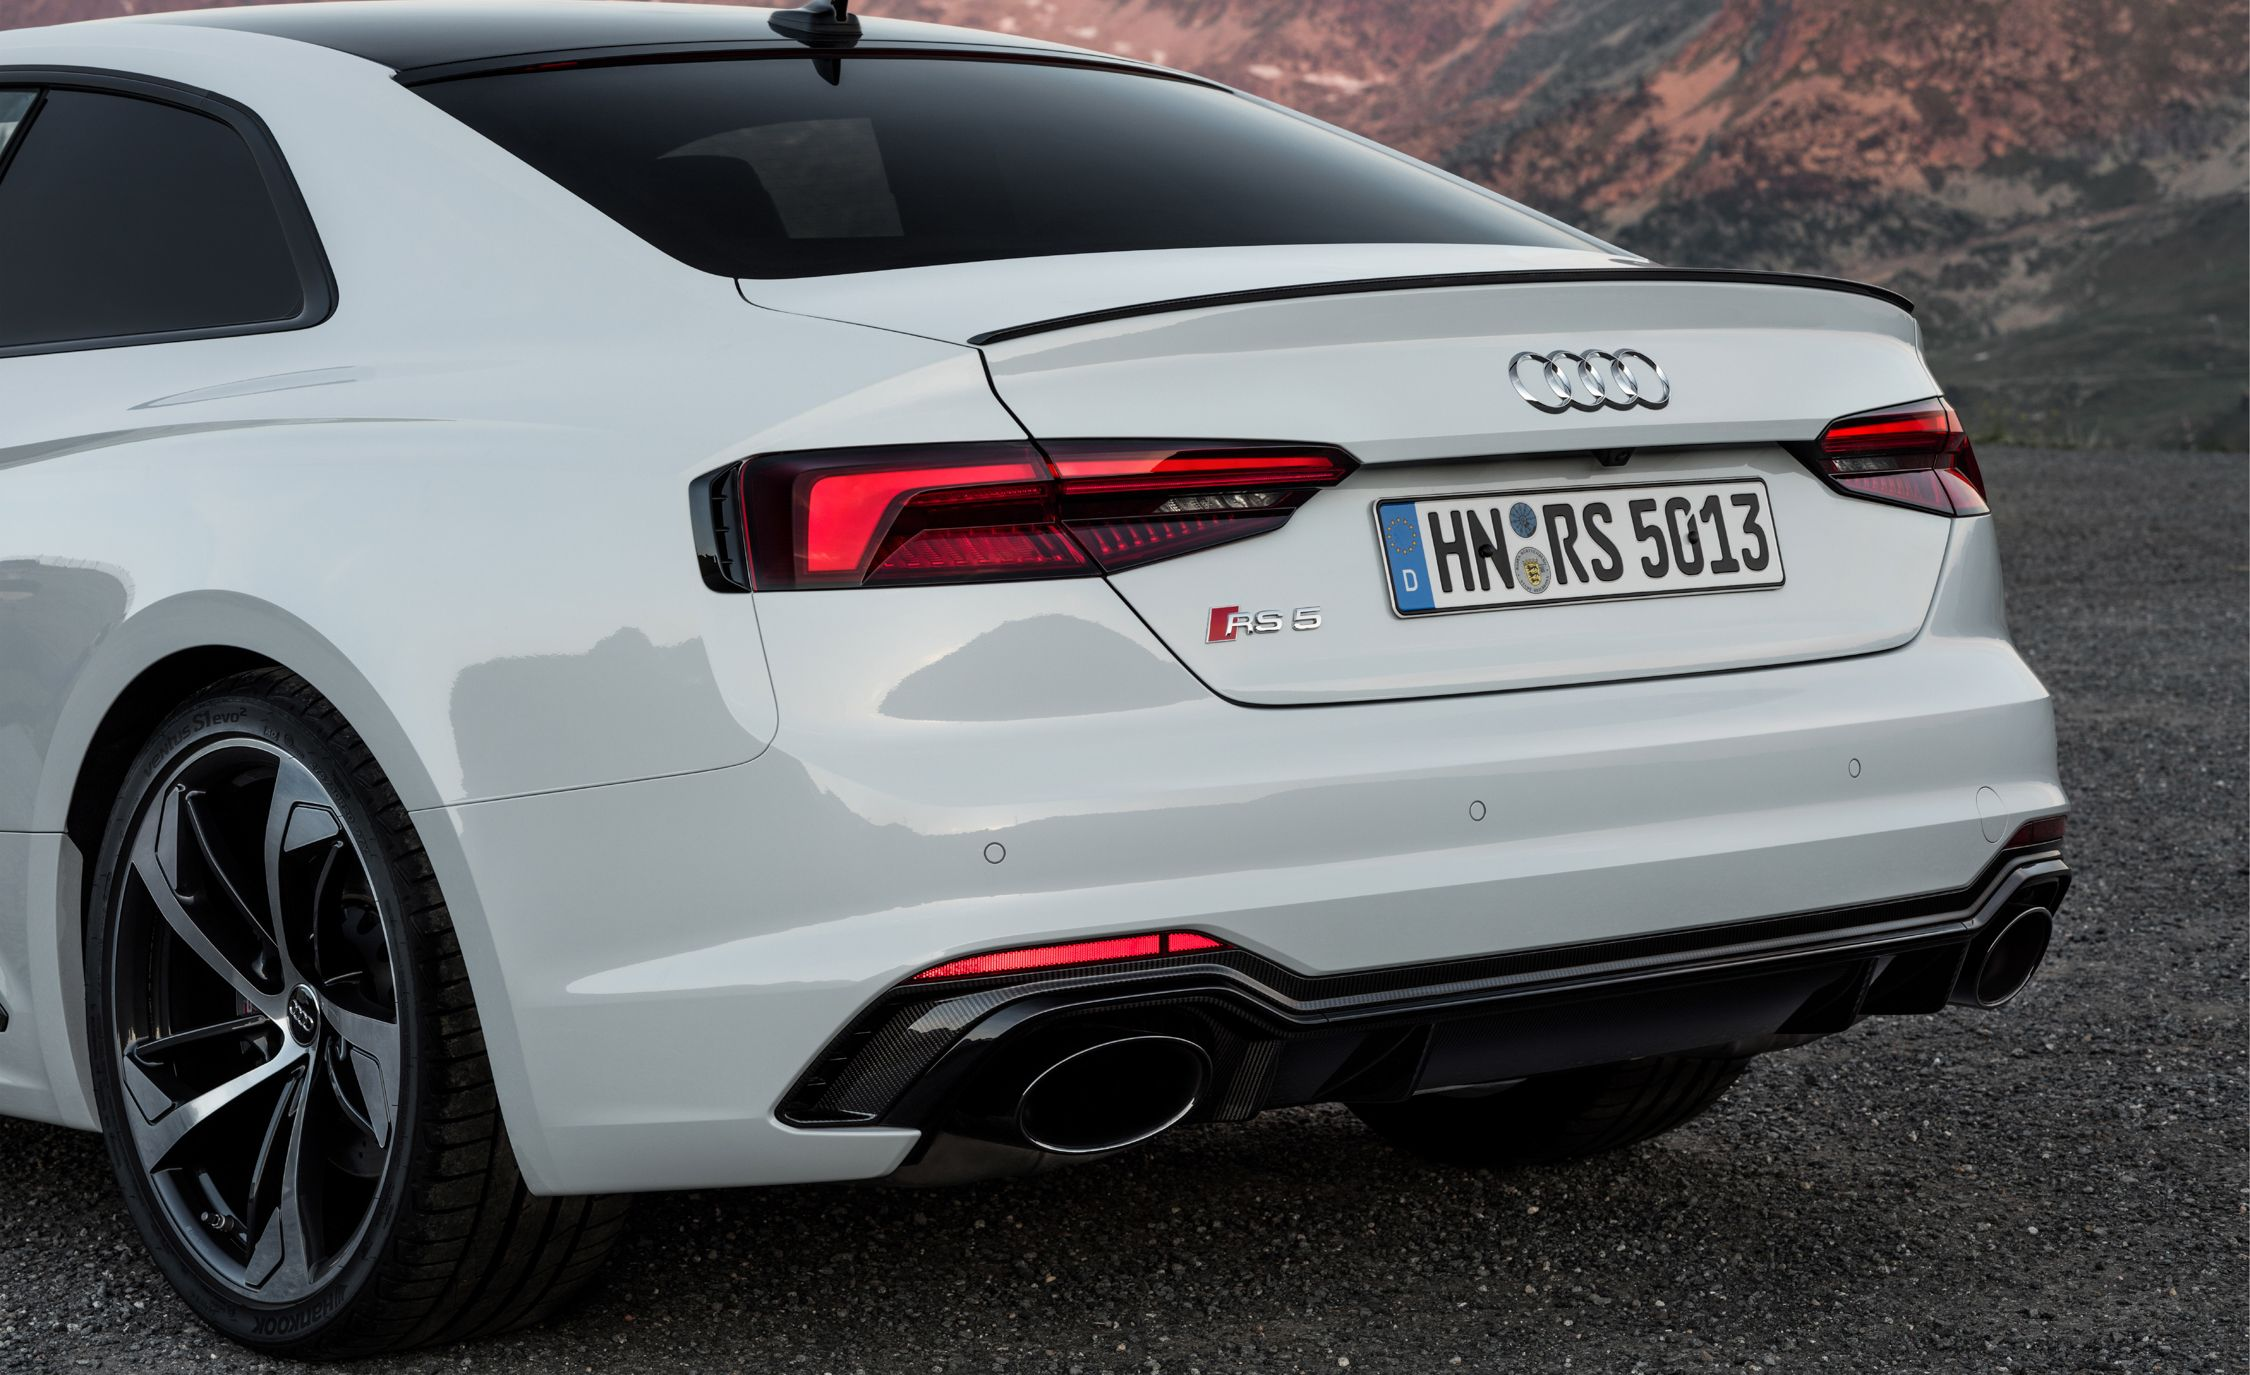 2019 audi rs5 reviews | audi rs5 price, photos, and specs | car and